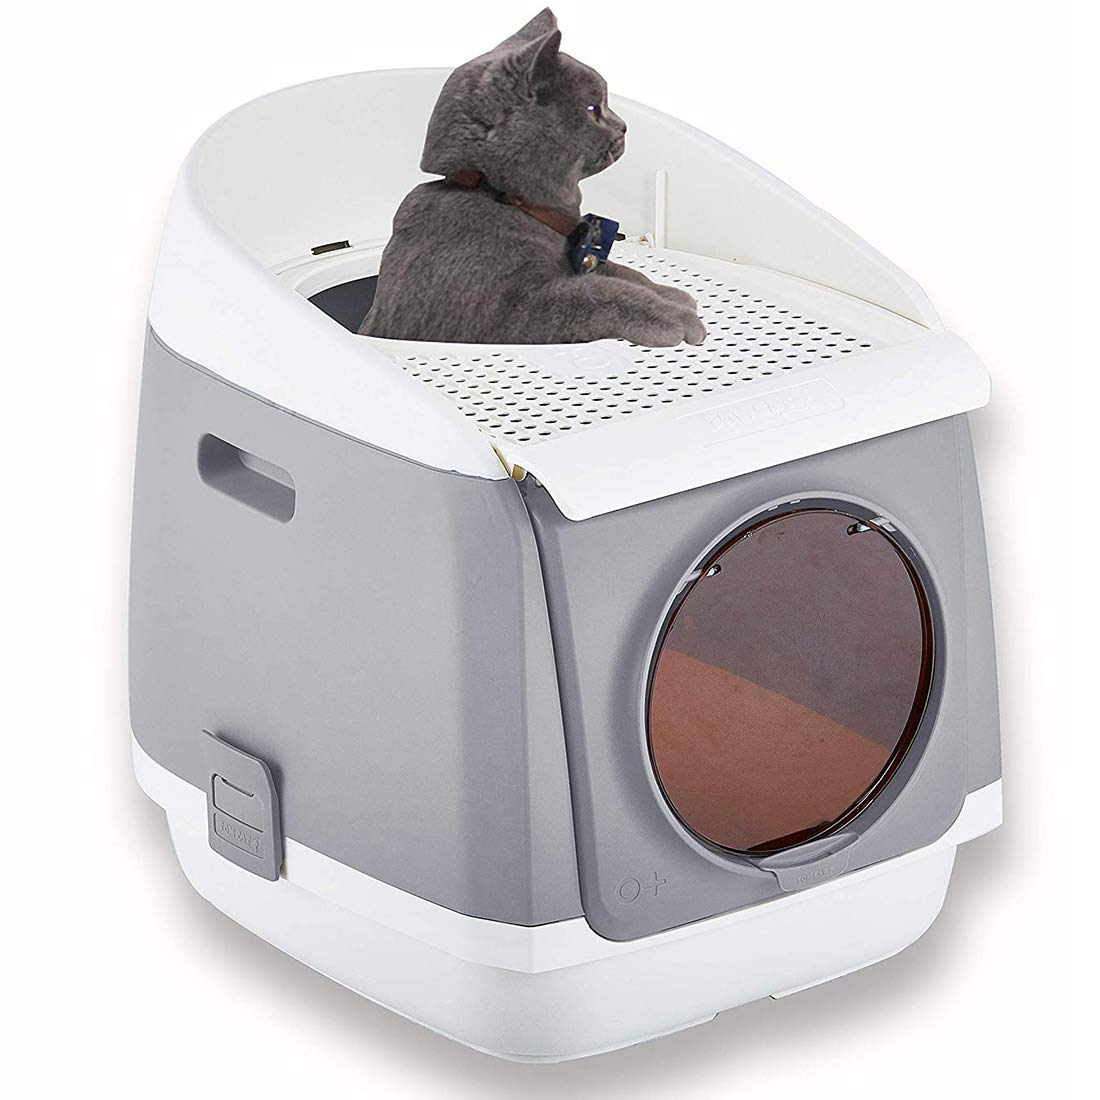 Pakeway Two Door Entry Cat Litter Box, Easy Clean Fully Enclosed Cat Toilet, Reduce Litter Scatterup to 95%, Service for Small Kitty & Big Cat, Gray by Pakeway